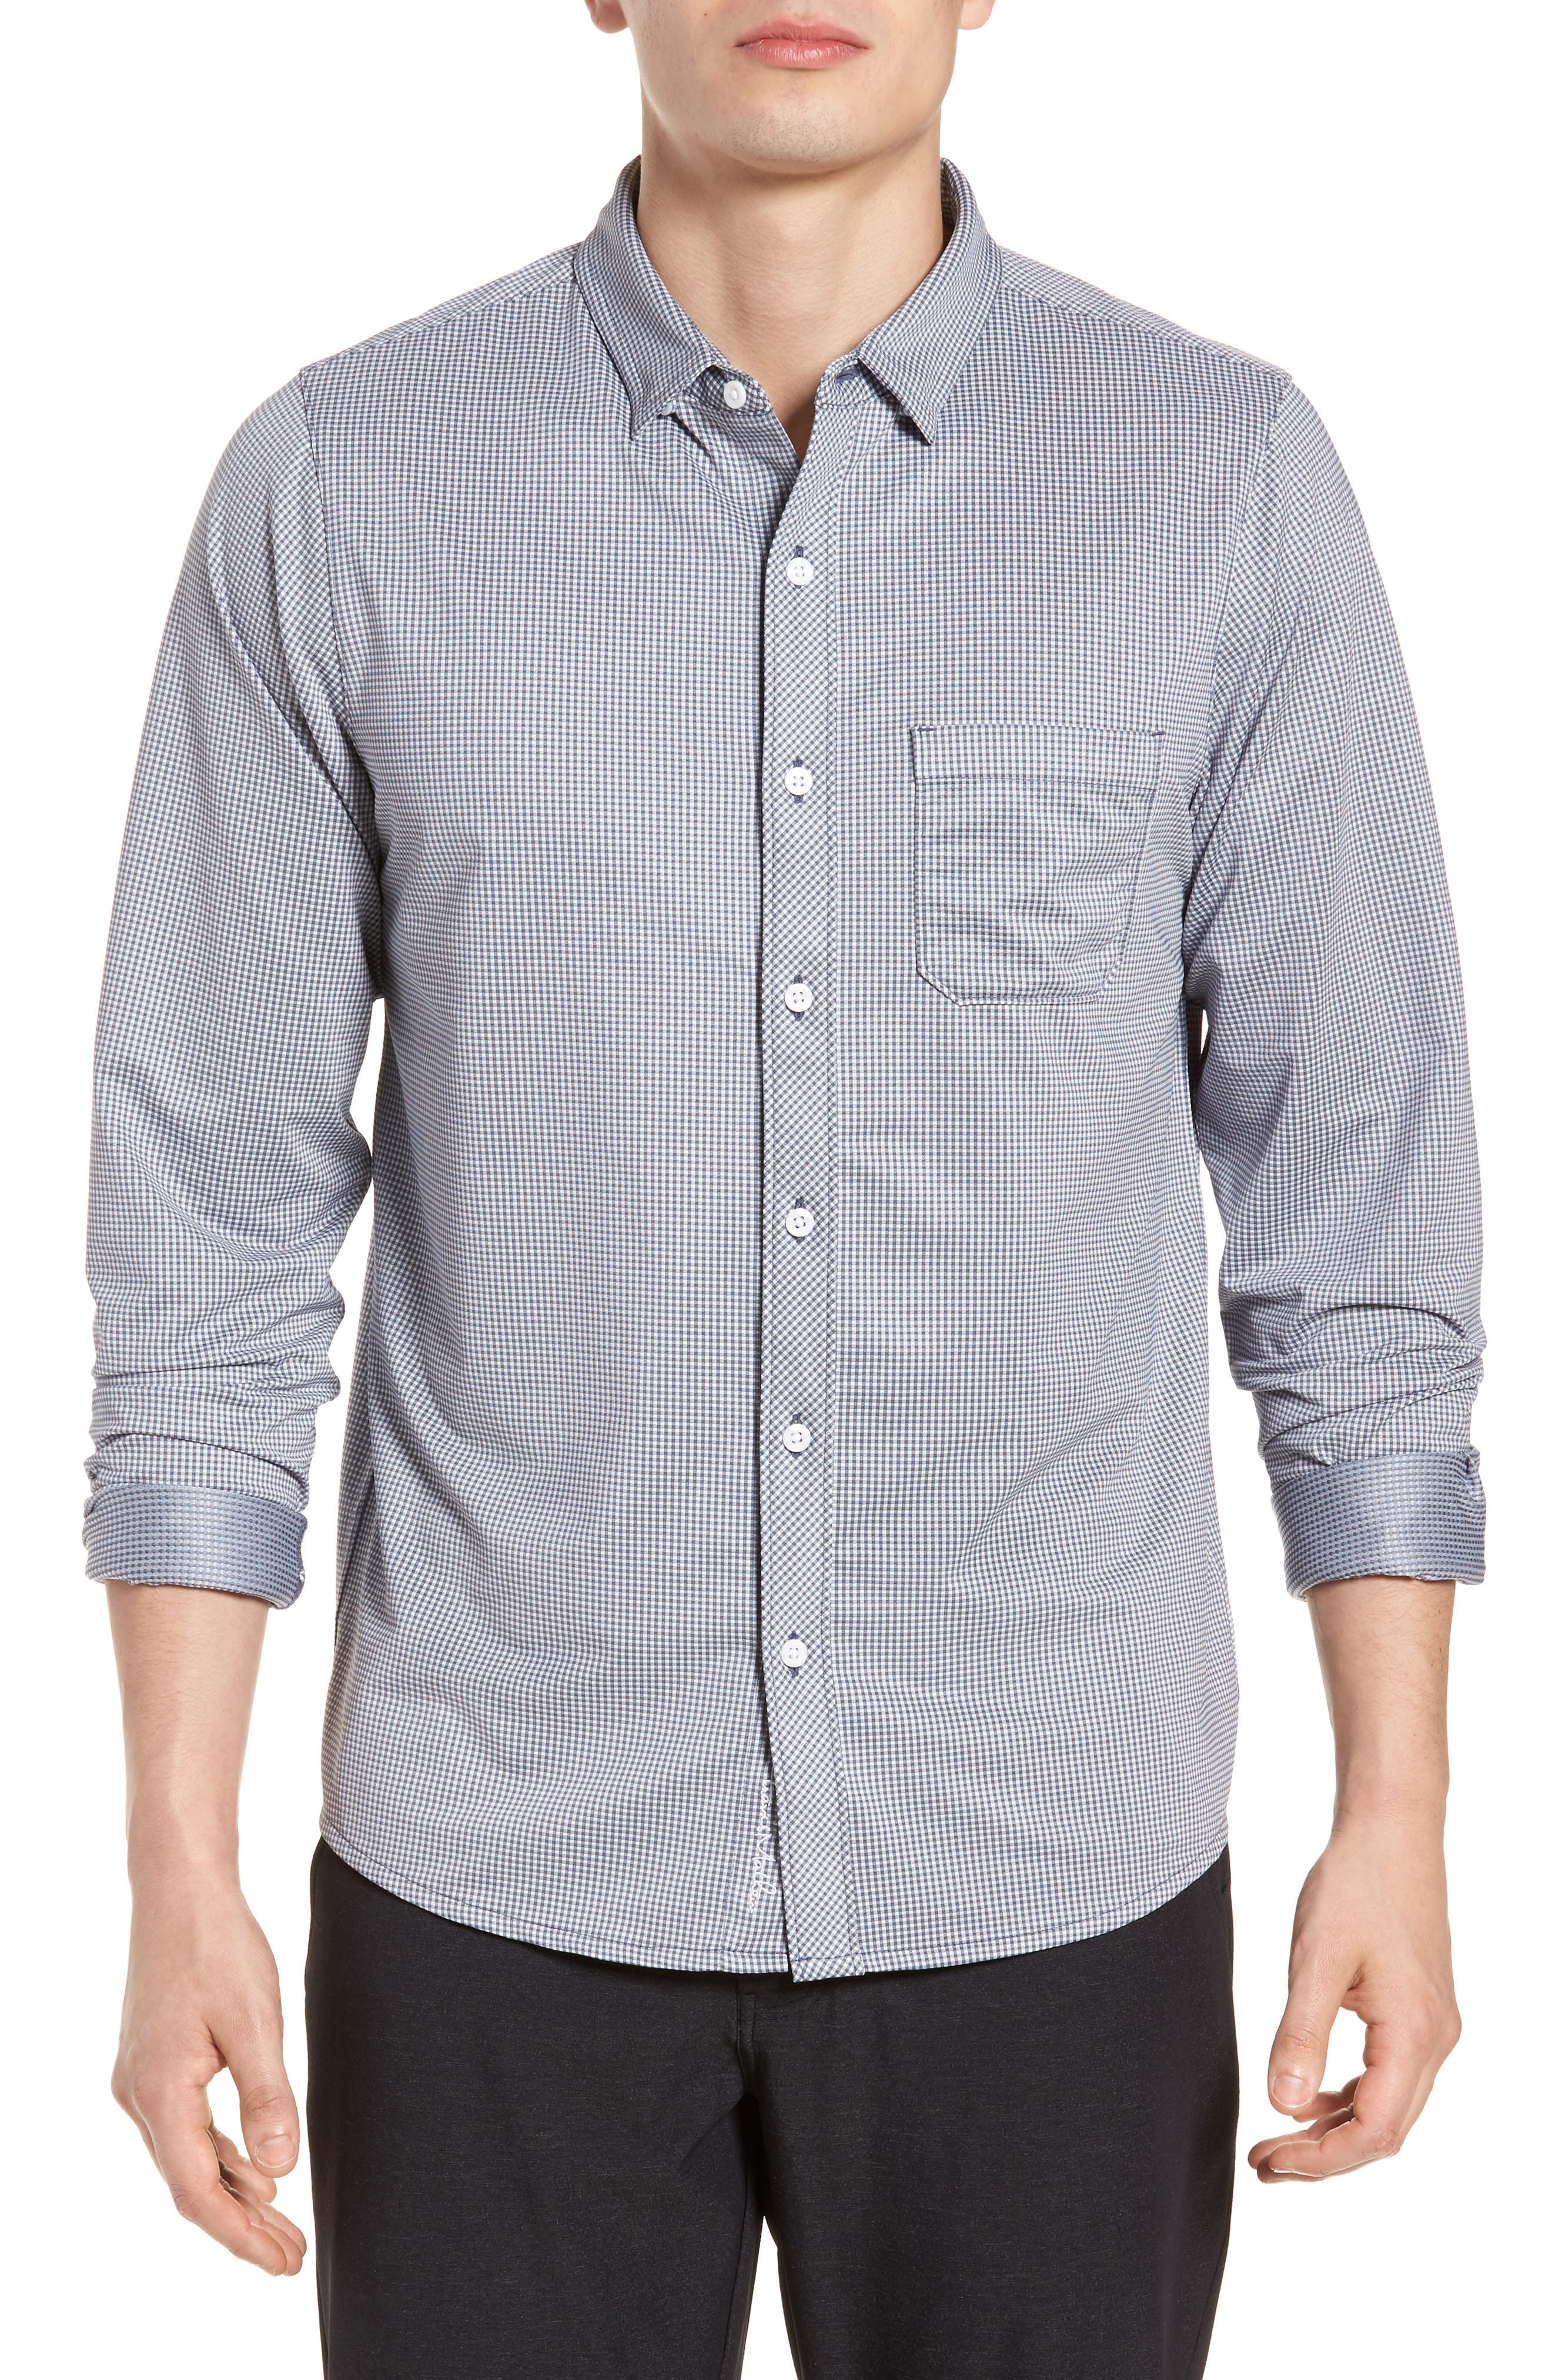 Couig Gingham Sport Shirt,                         Main,                         color, White/ Grisaille